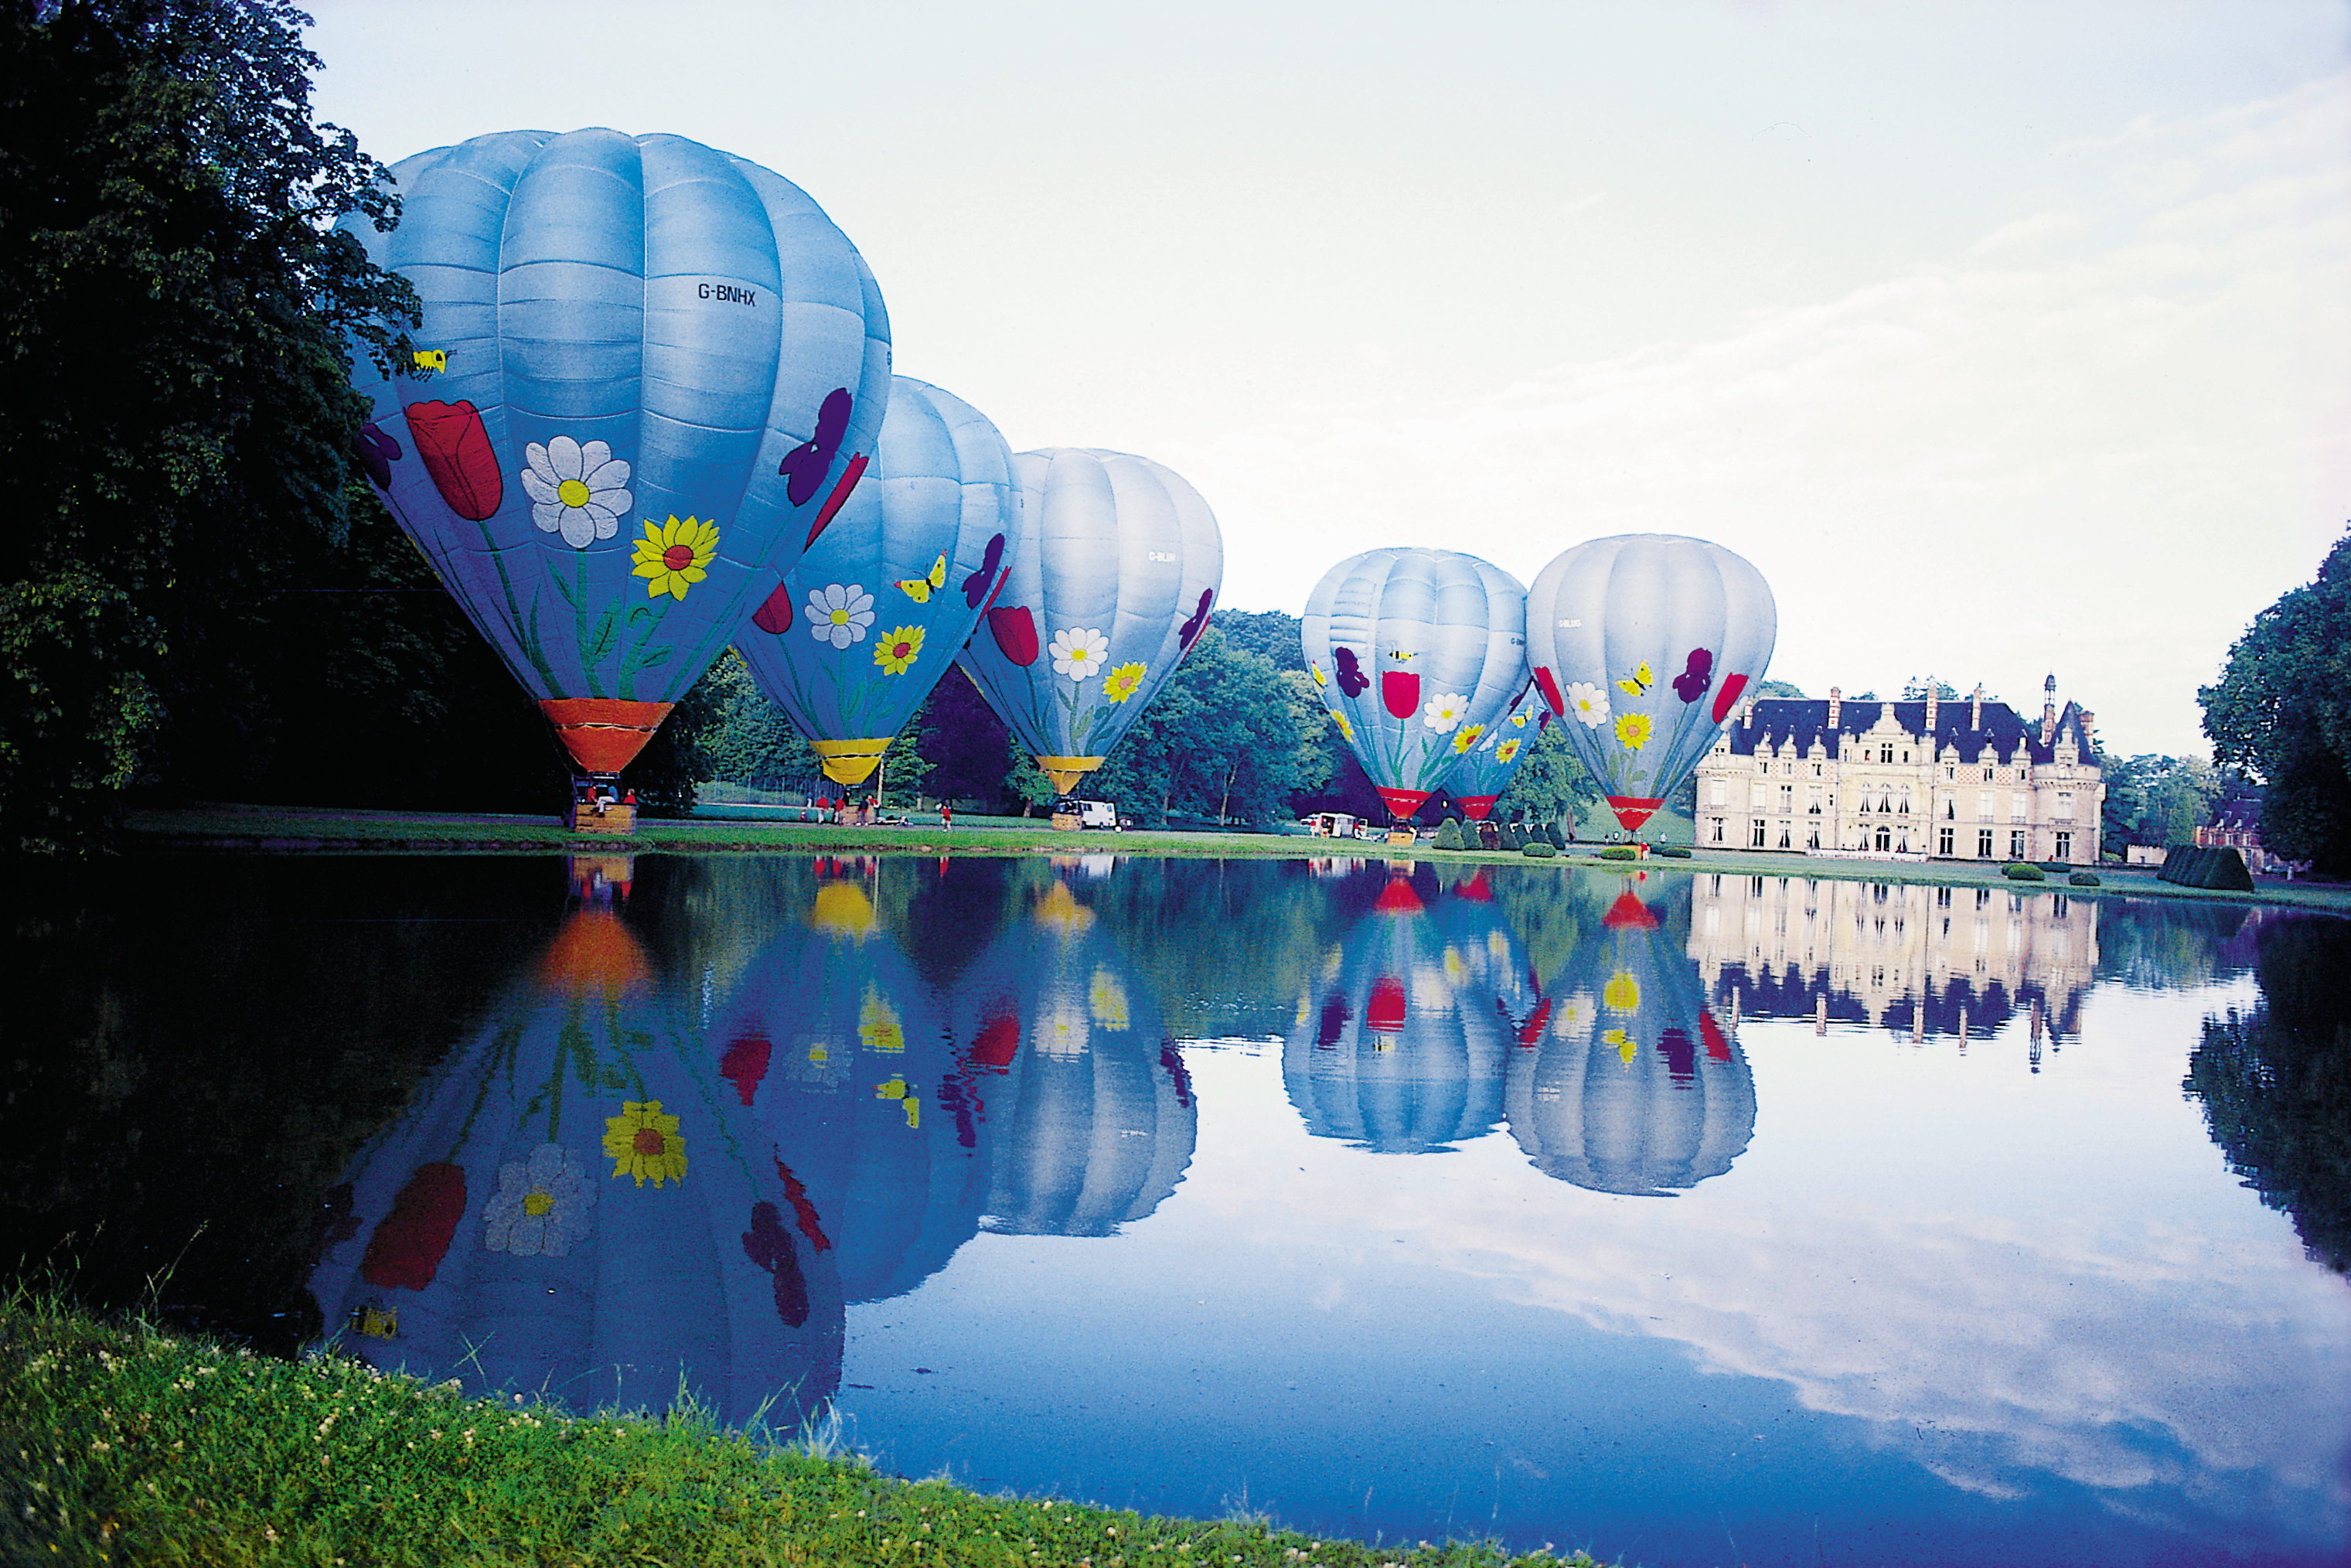 GRAND TOURING, WHEN IT COMES TO ELITE WORLD TRAVEL,  BUDDY BOMBARD'S BALLOONS RISE ABOVE ALL ELSE